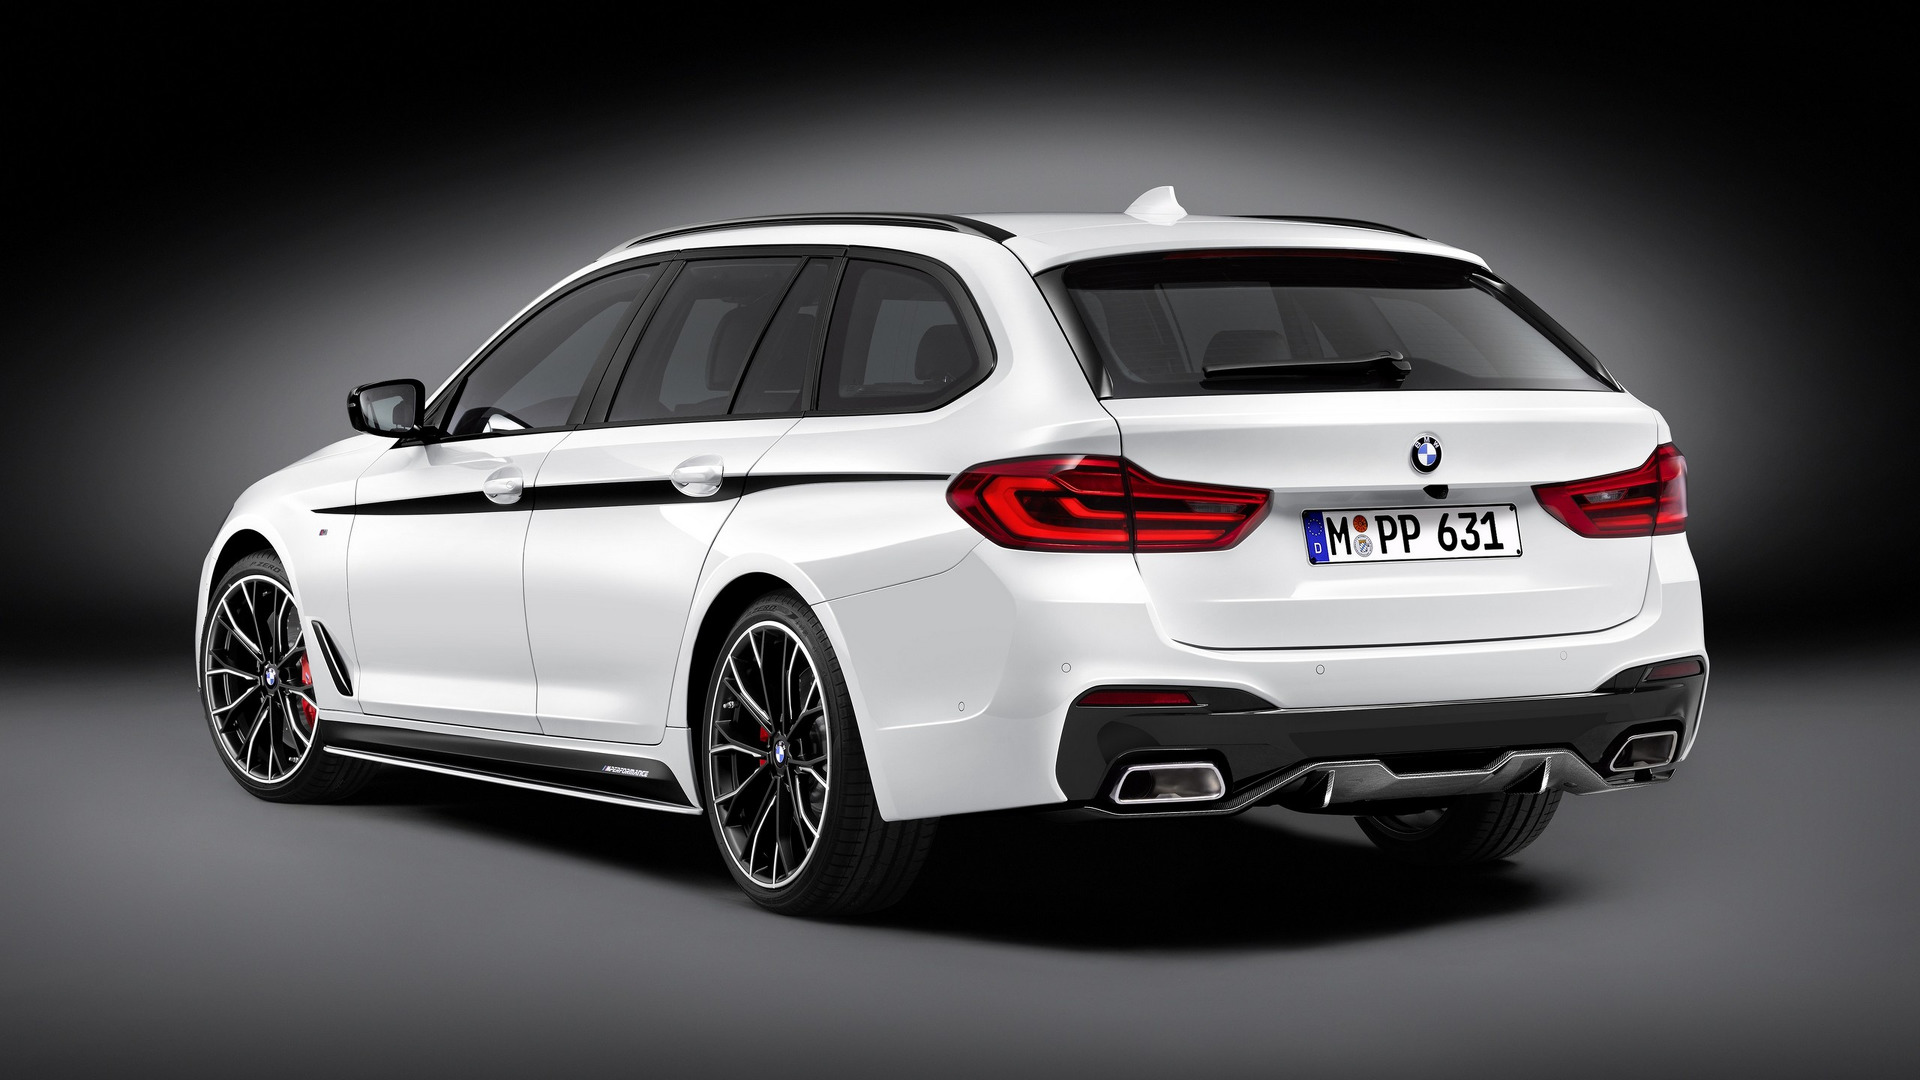 Bmw U S Dealers Say They Re Missing A Wagon To Fight Audi